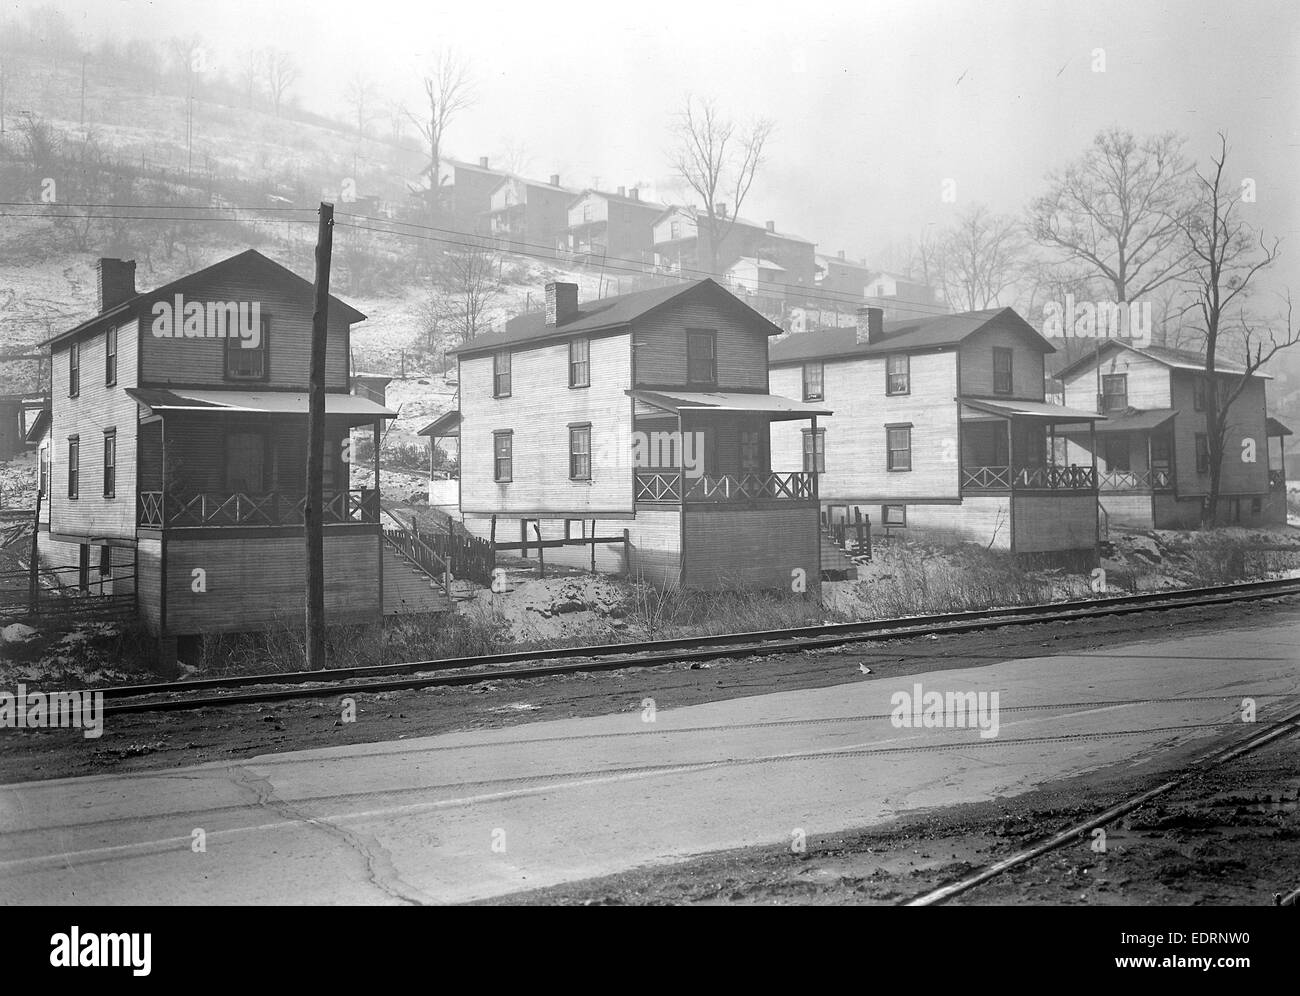 Scott's Run, West Virginia. Pursglove Mines Nos. 4 and 5 - Scene taken from main highway shows typical hillside - Stock Image